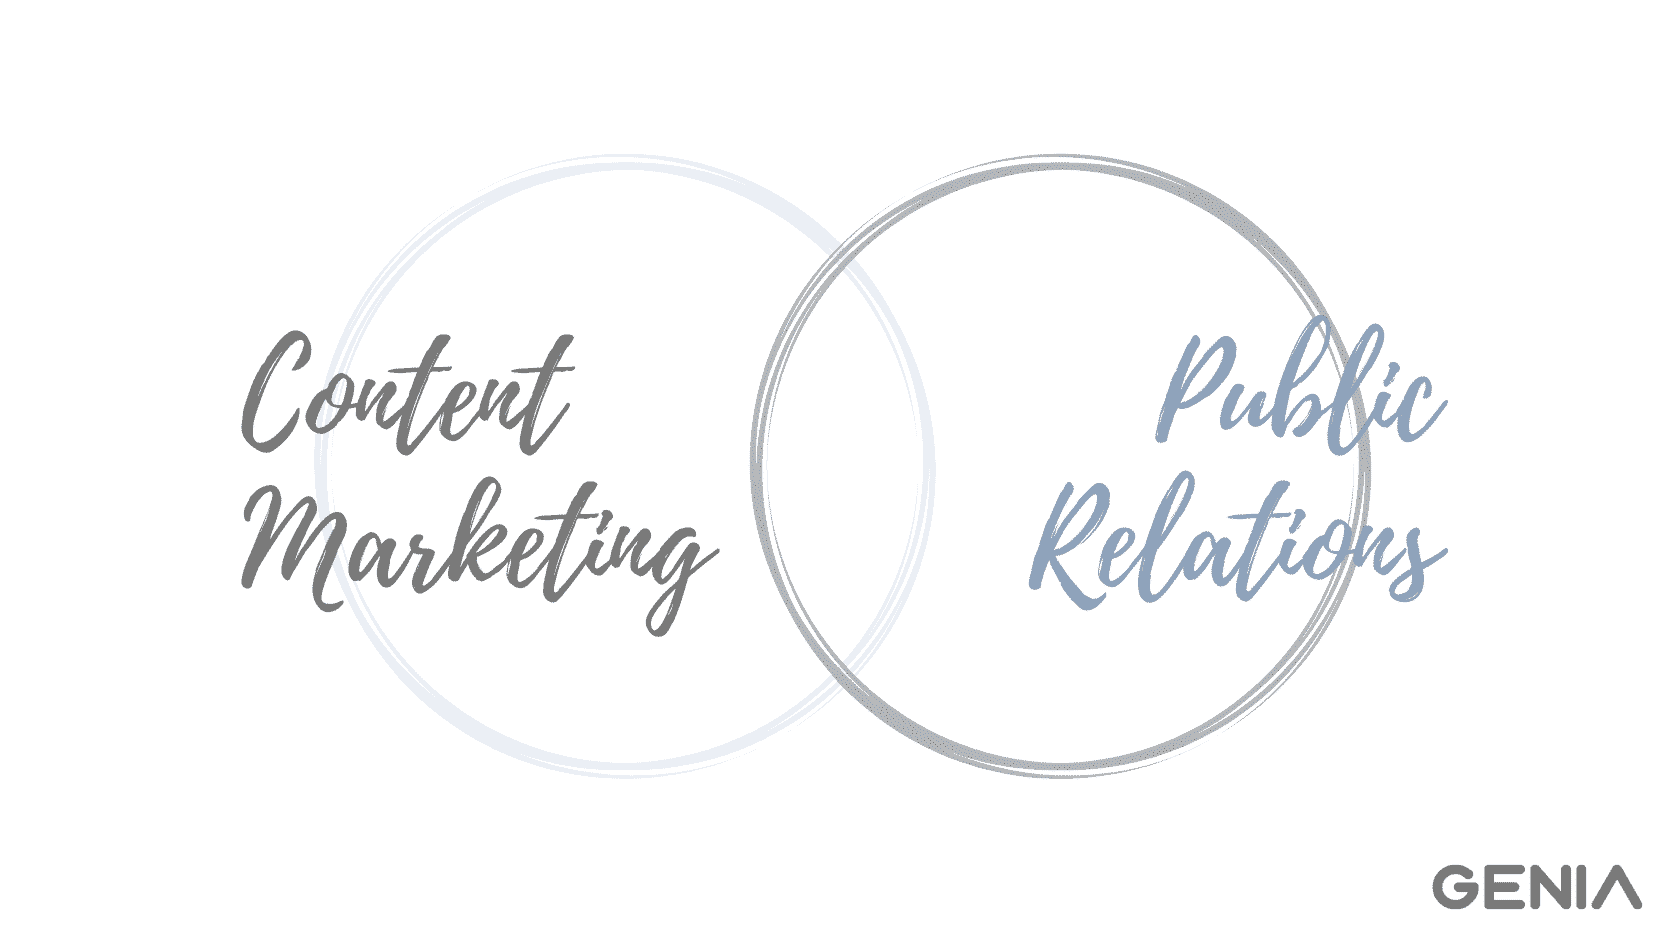 content marketing and public relations